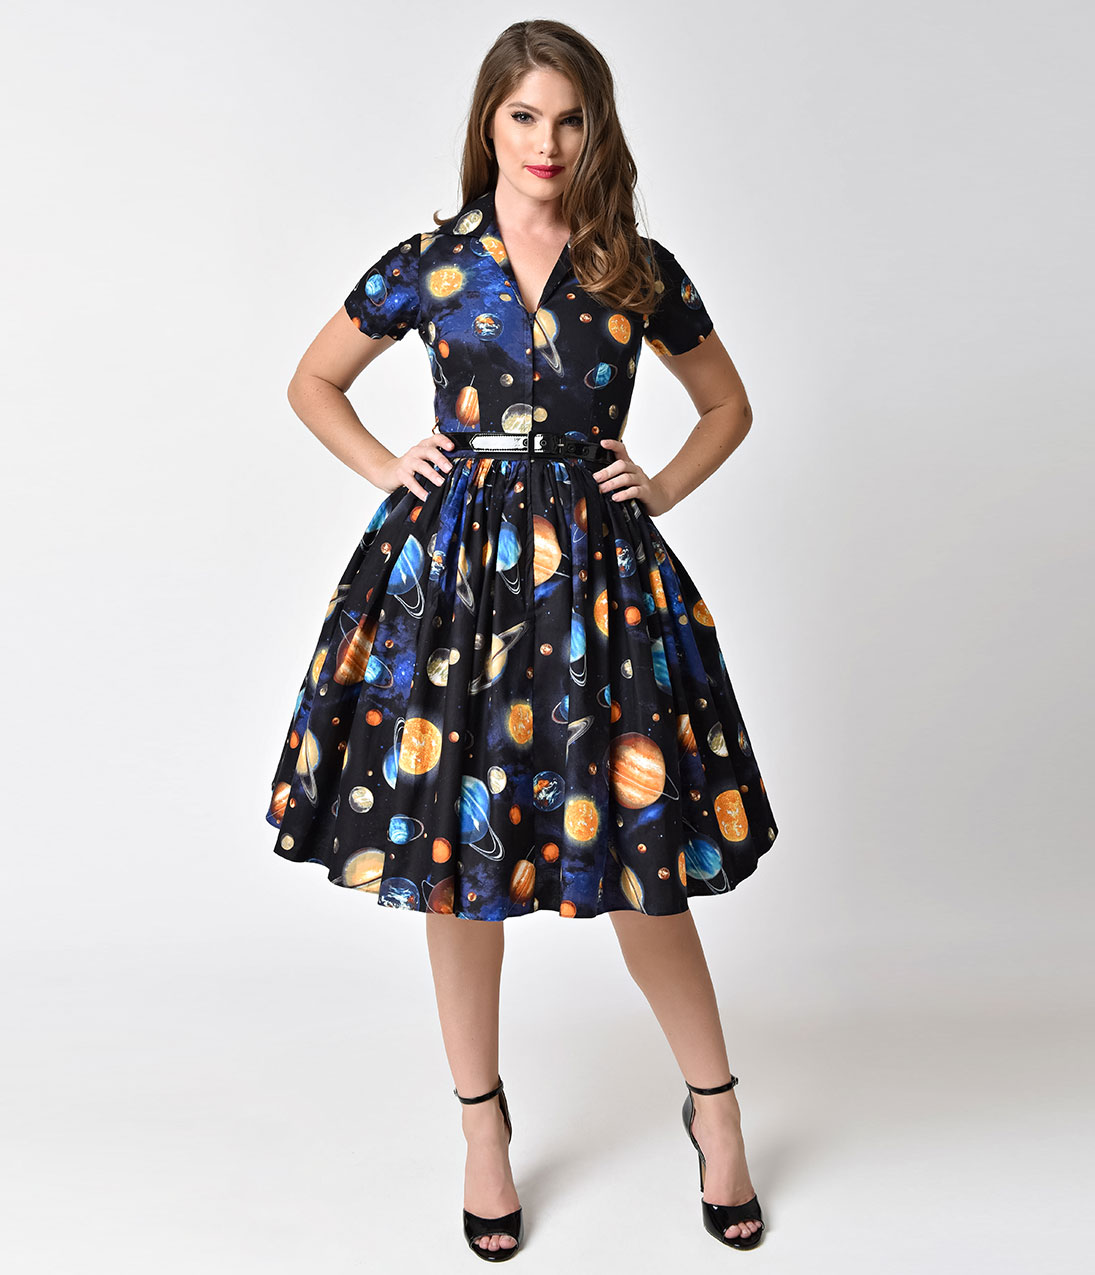 1950s rockabilly dresses | rockabilly clothing bernie dexter 1950s style  black outer space print XEVTKFZ